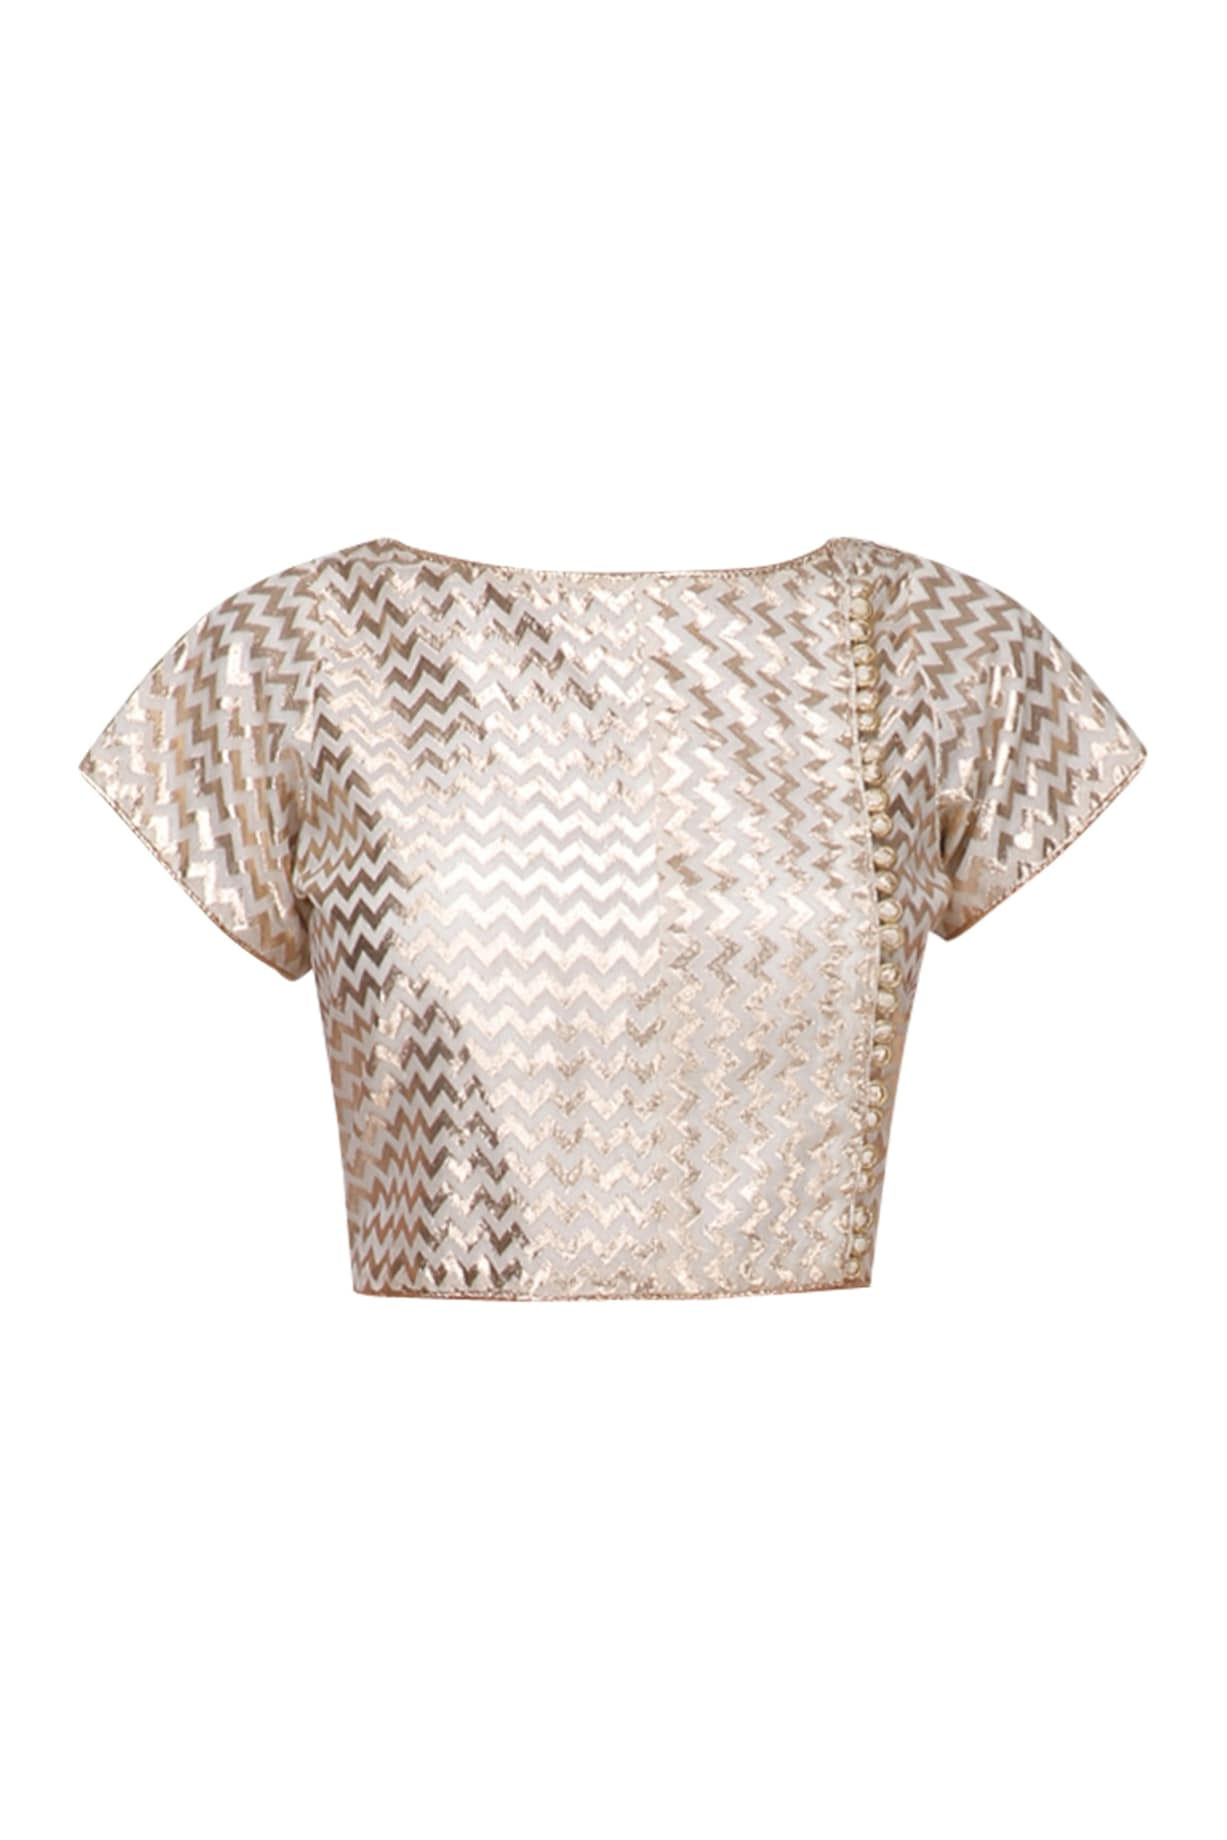 44b9dd1c1388e8 Cream and gold embroidered crop top available only at Pernia s Pop Up Shop.